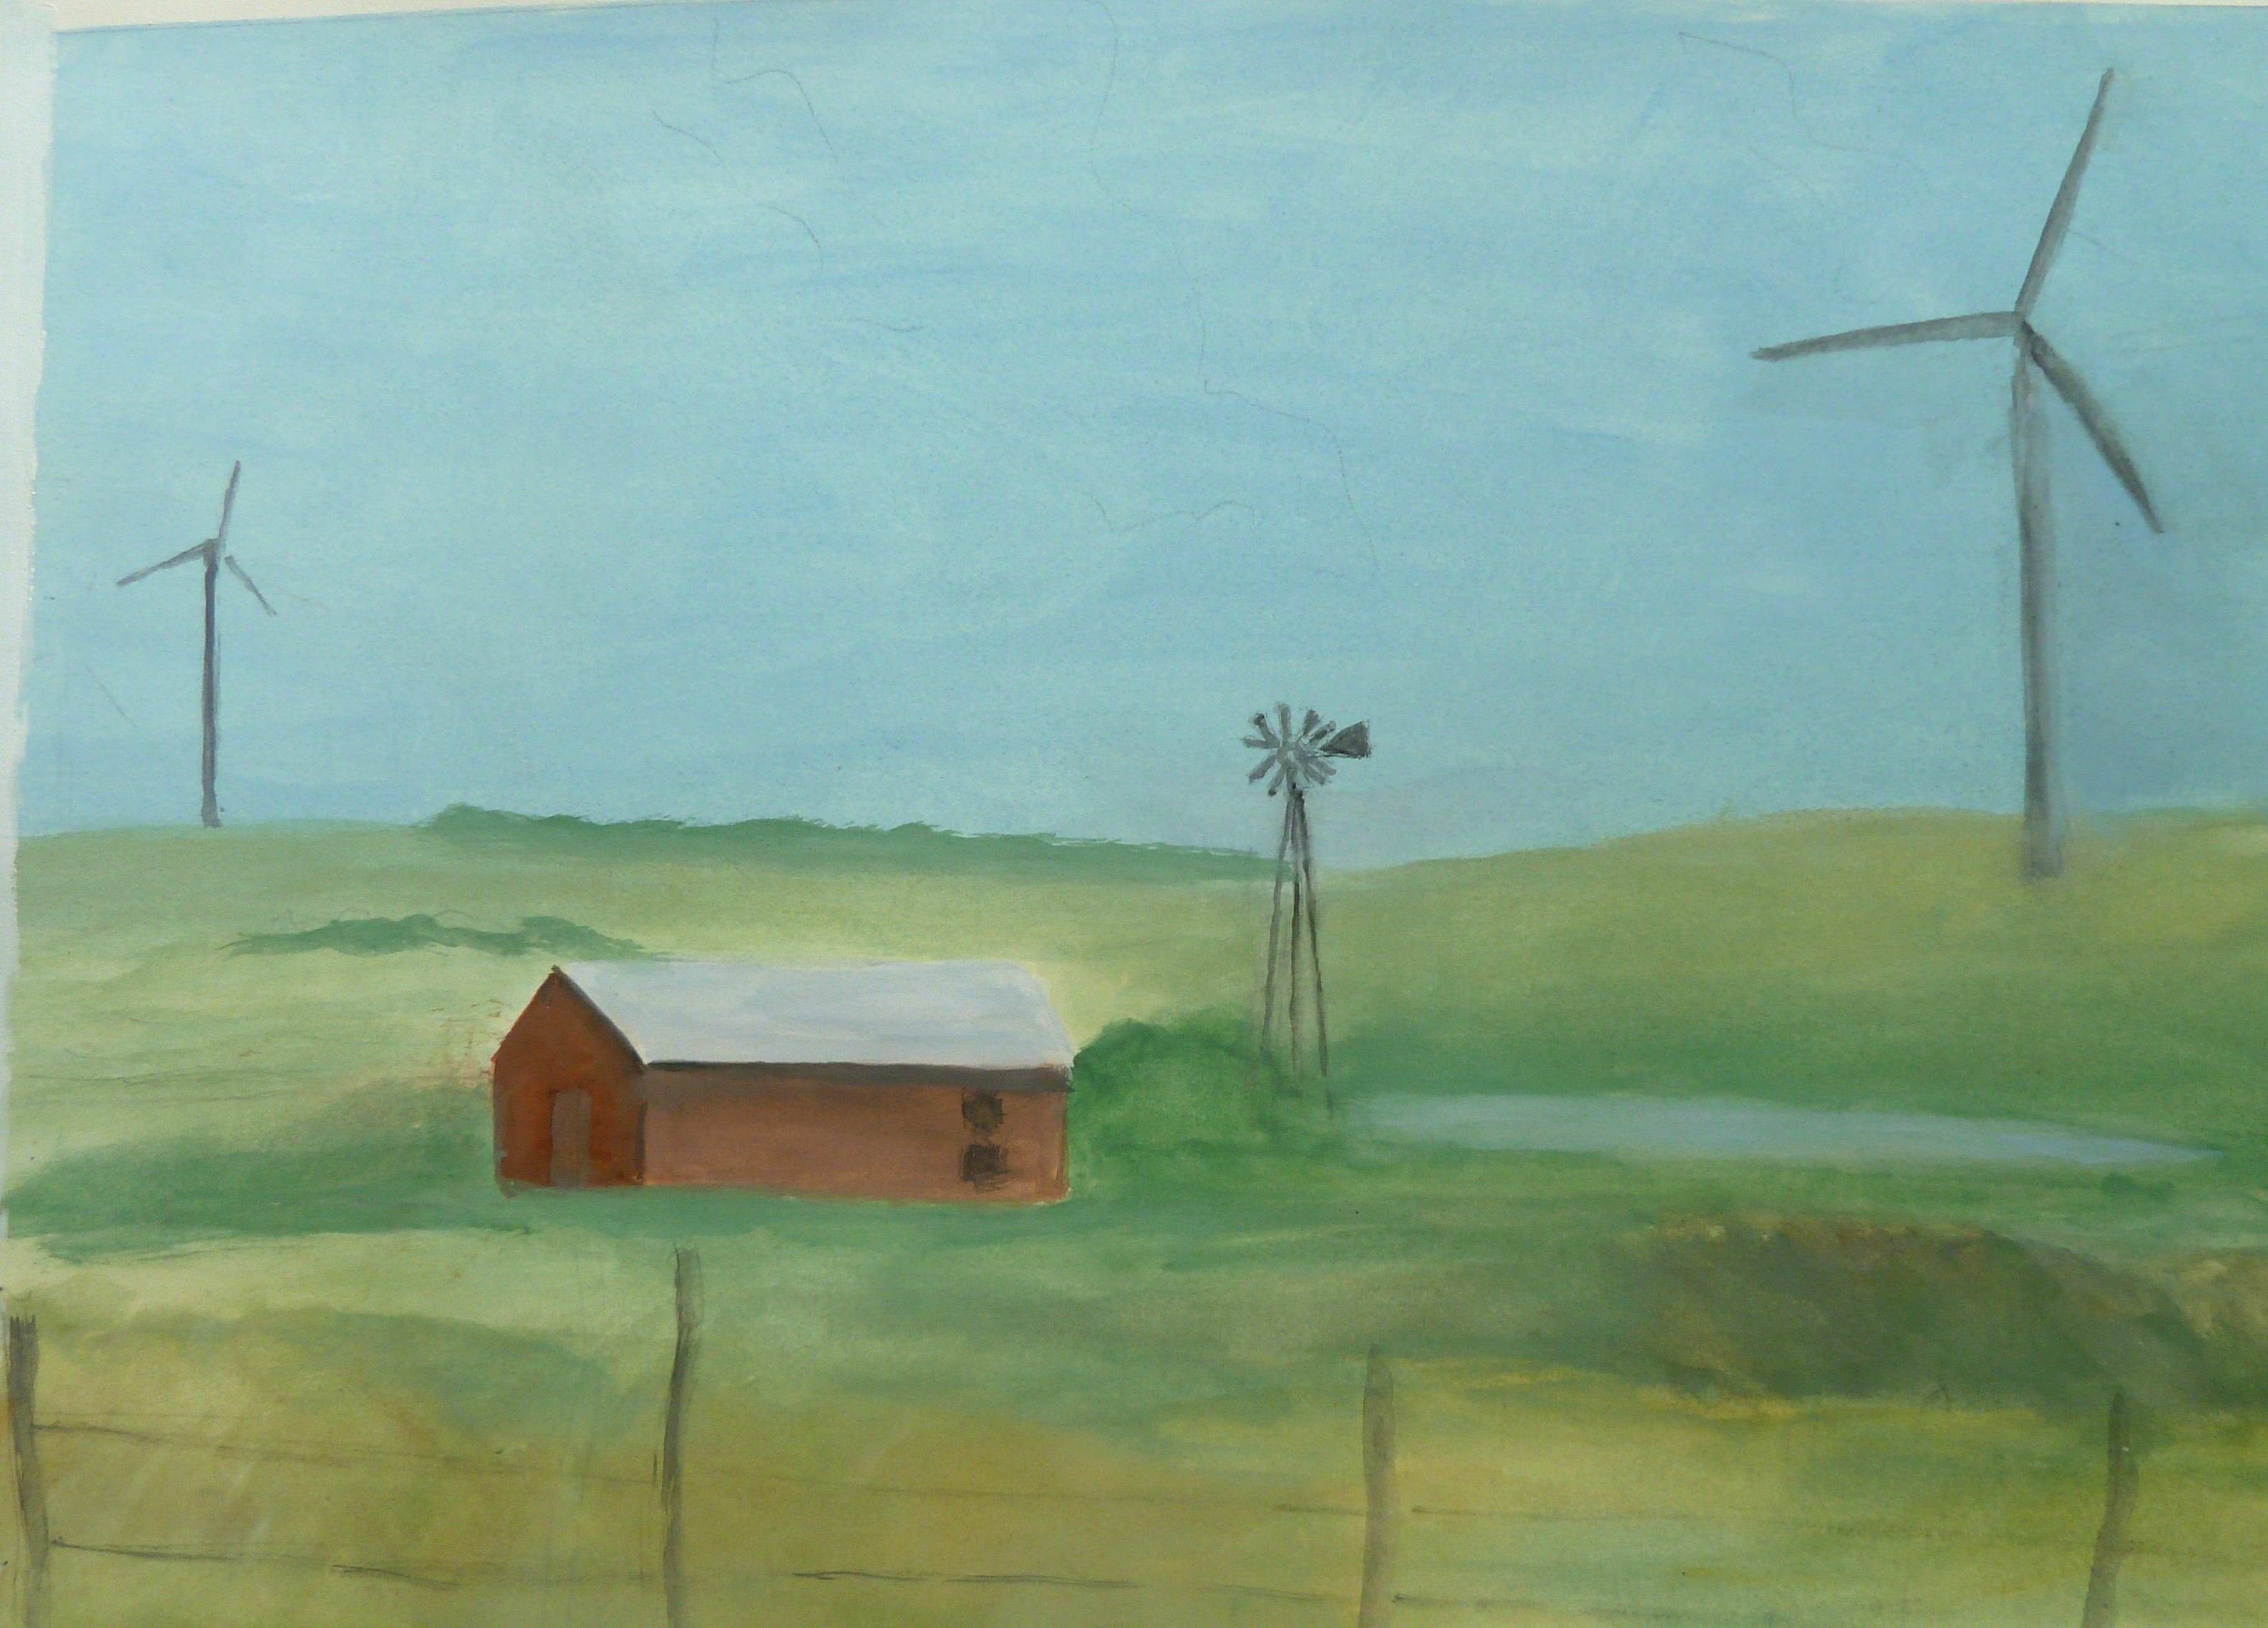 Wind turbines and windmill